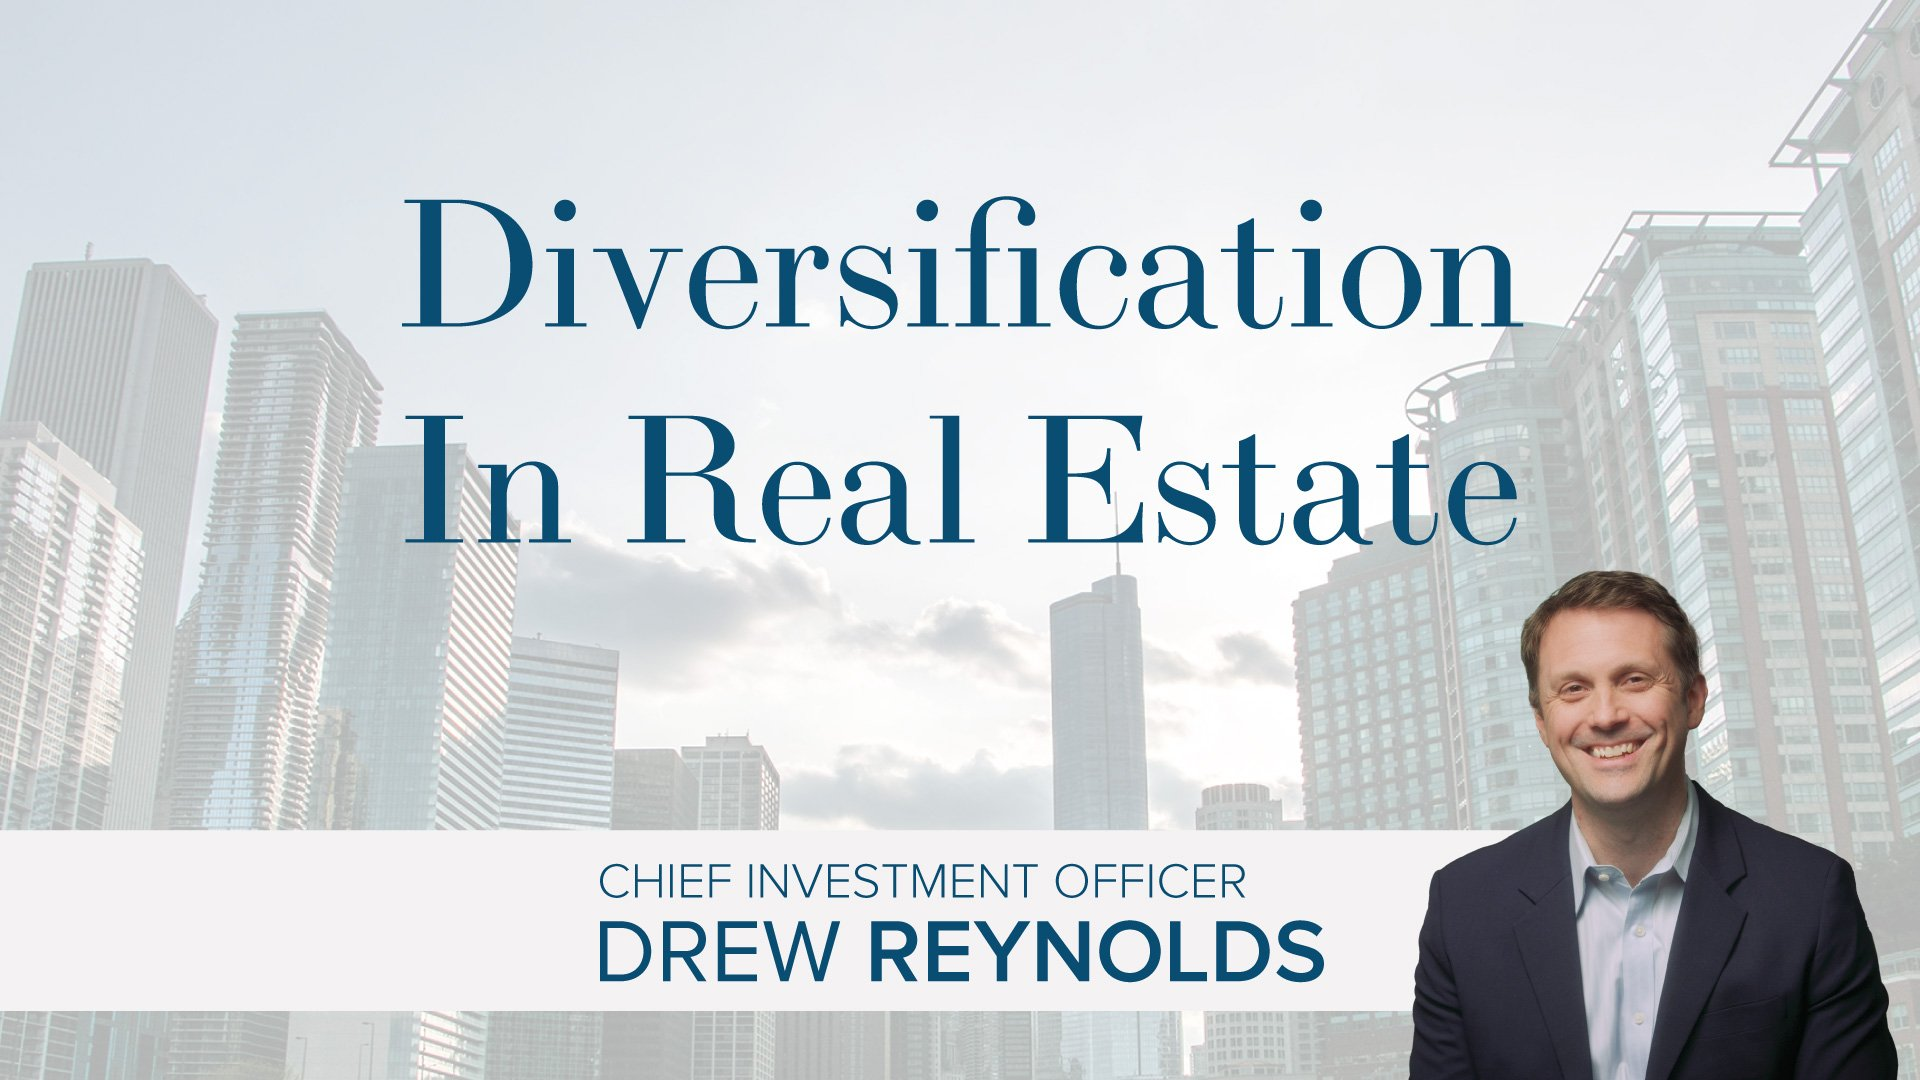 Real Estate Diversification Portfolio: Investing In Real Estate